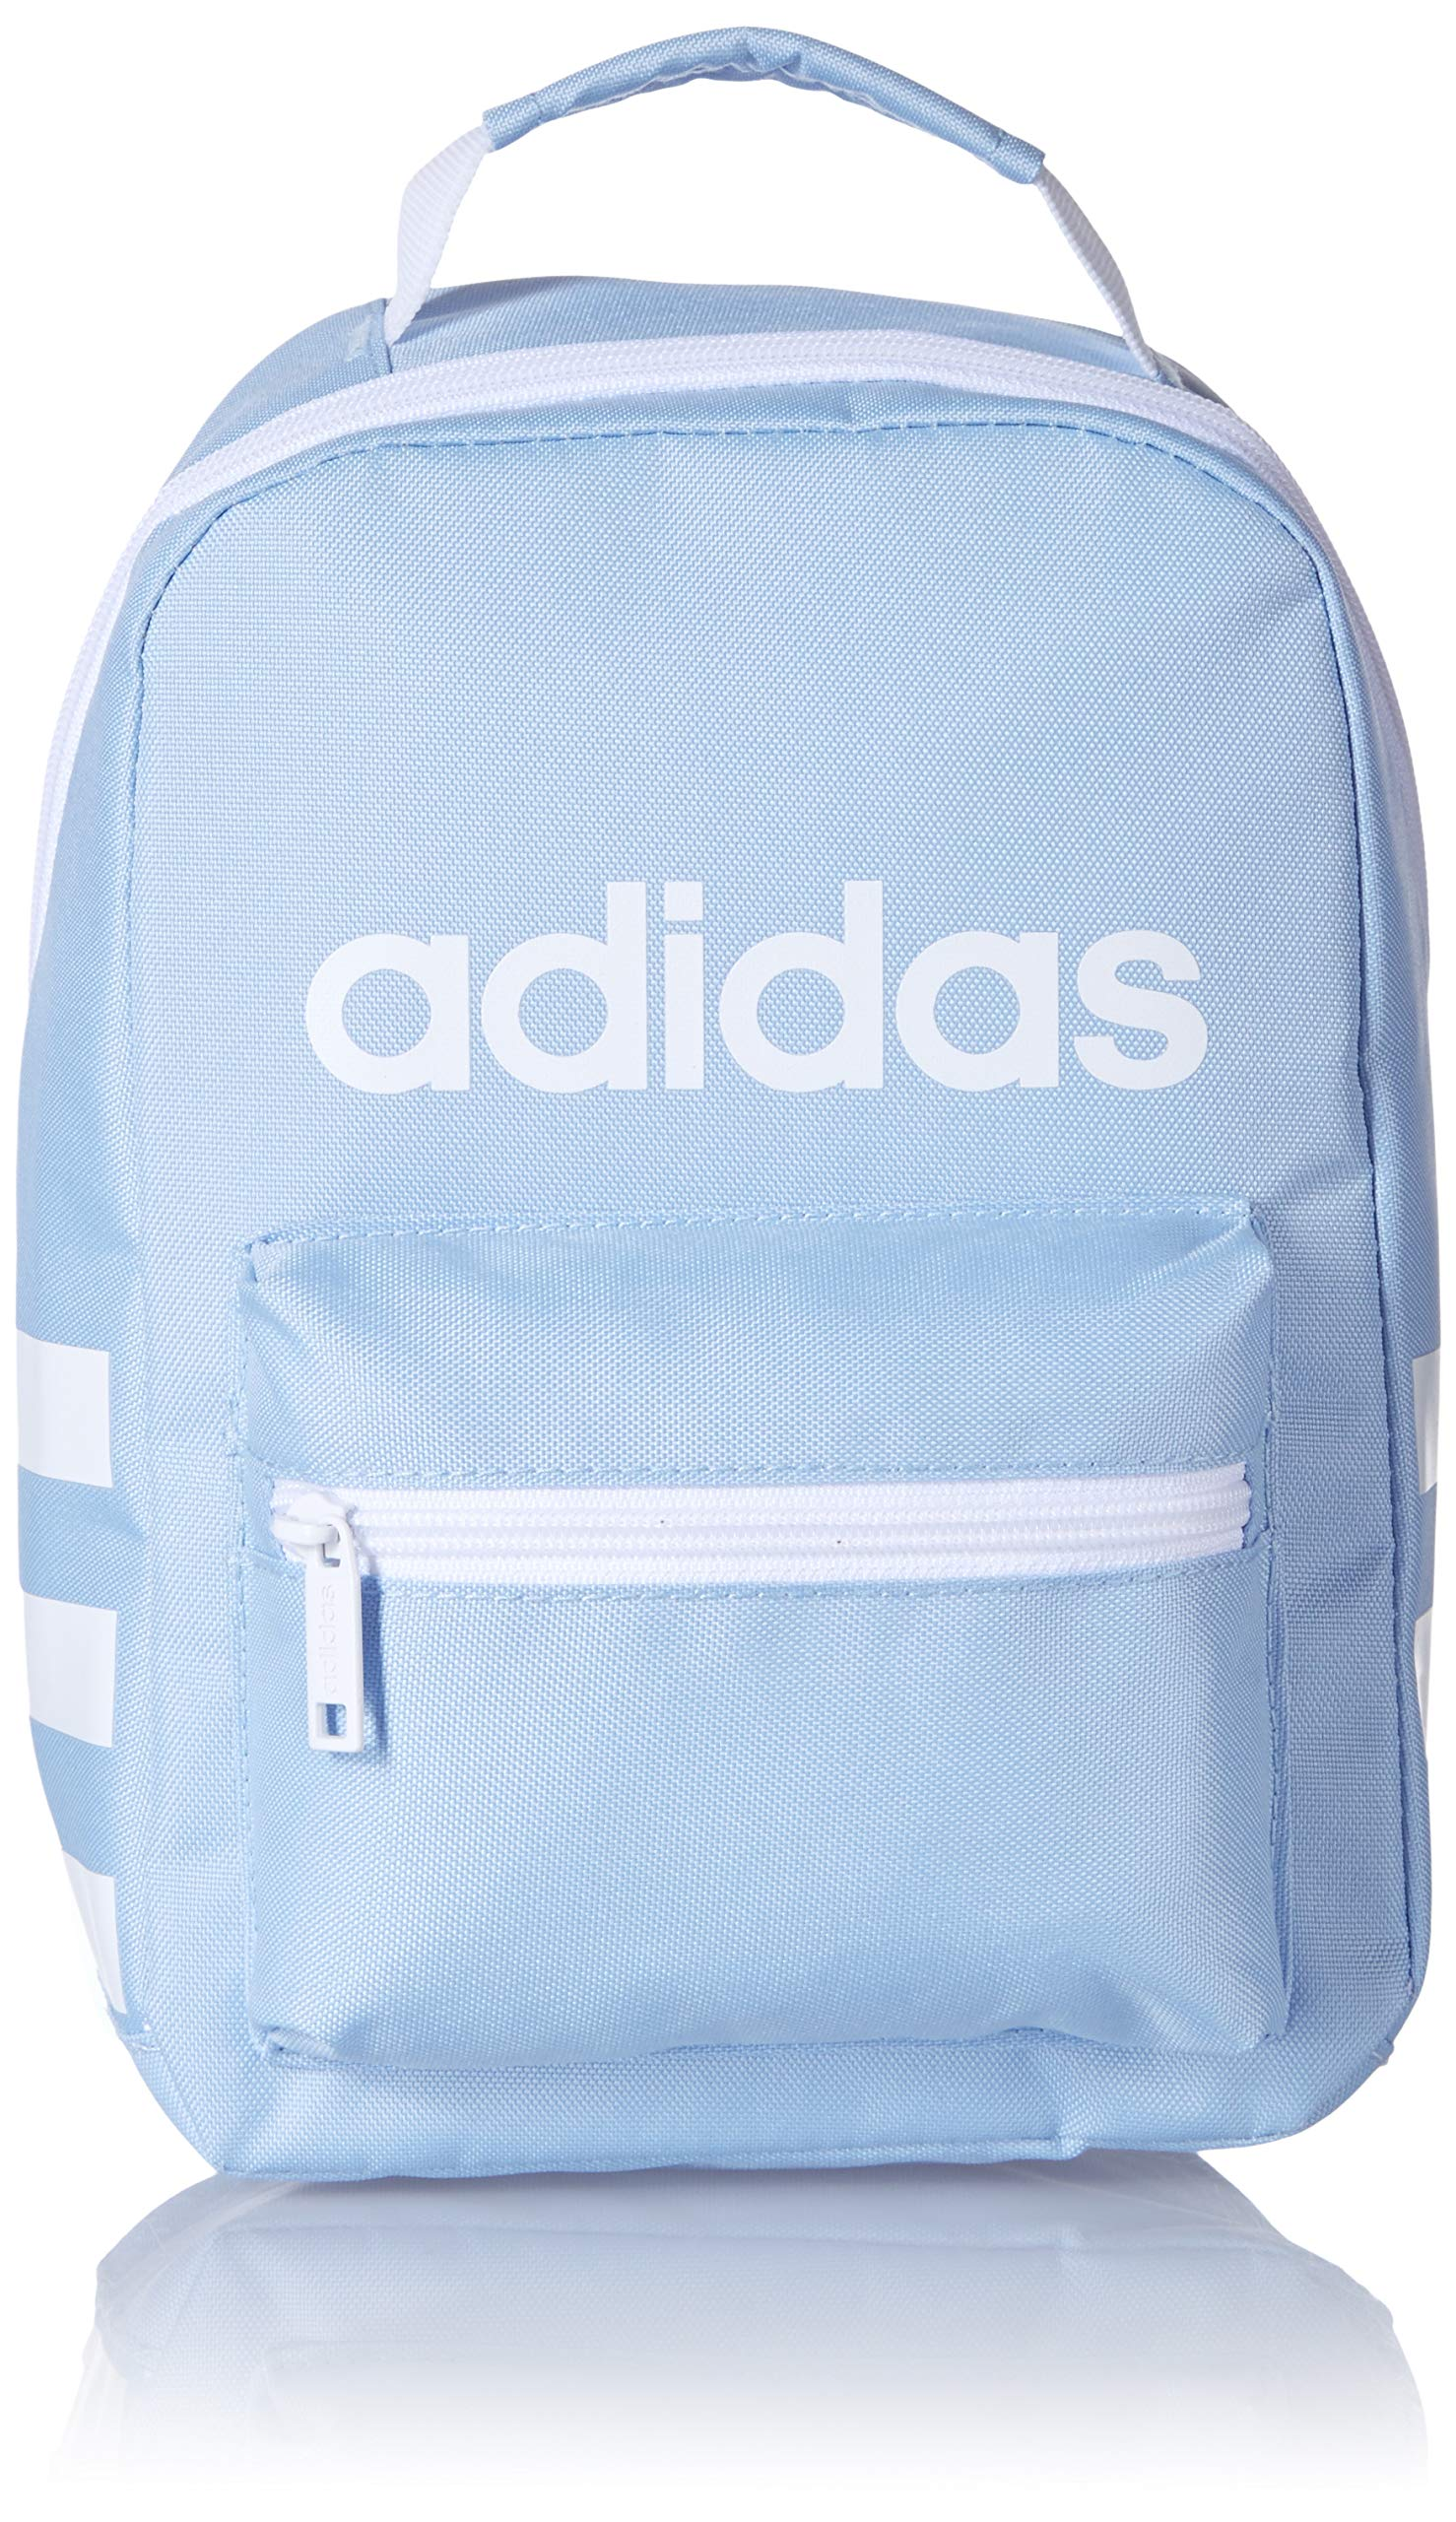 adidas Unisex Santiago Insulated Lunch Bag, Glow Blue/White, ONE SIZE by adidas